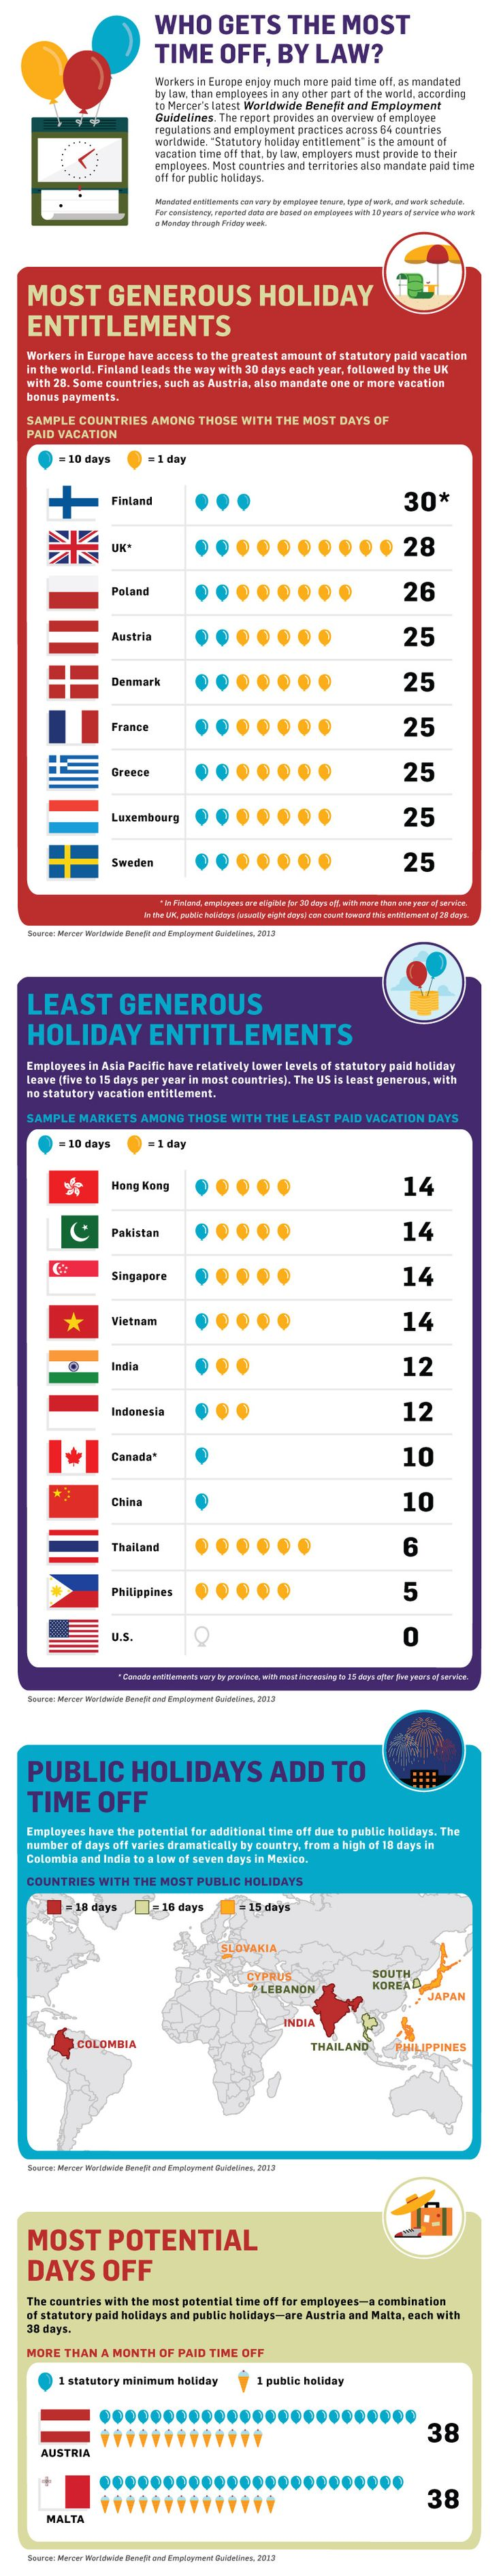 Which Countries Get the Most Paid Time Off?